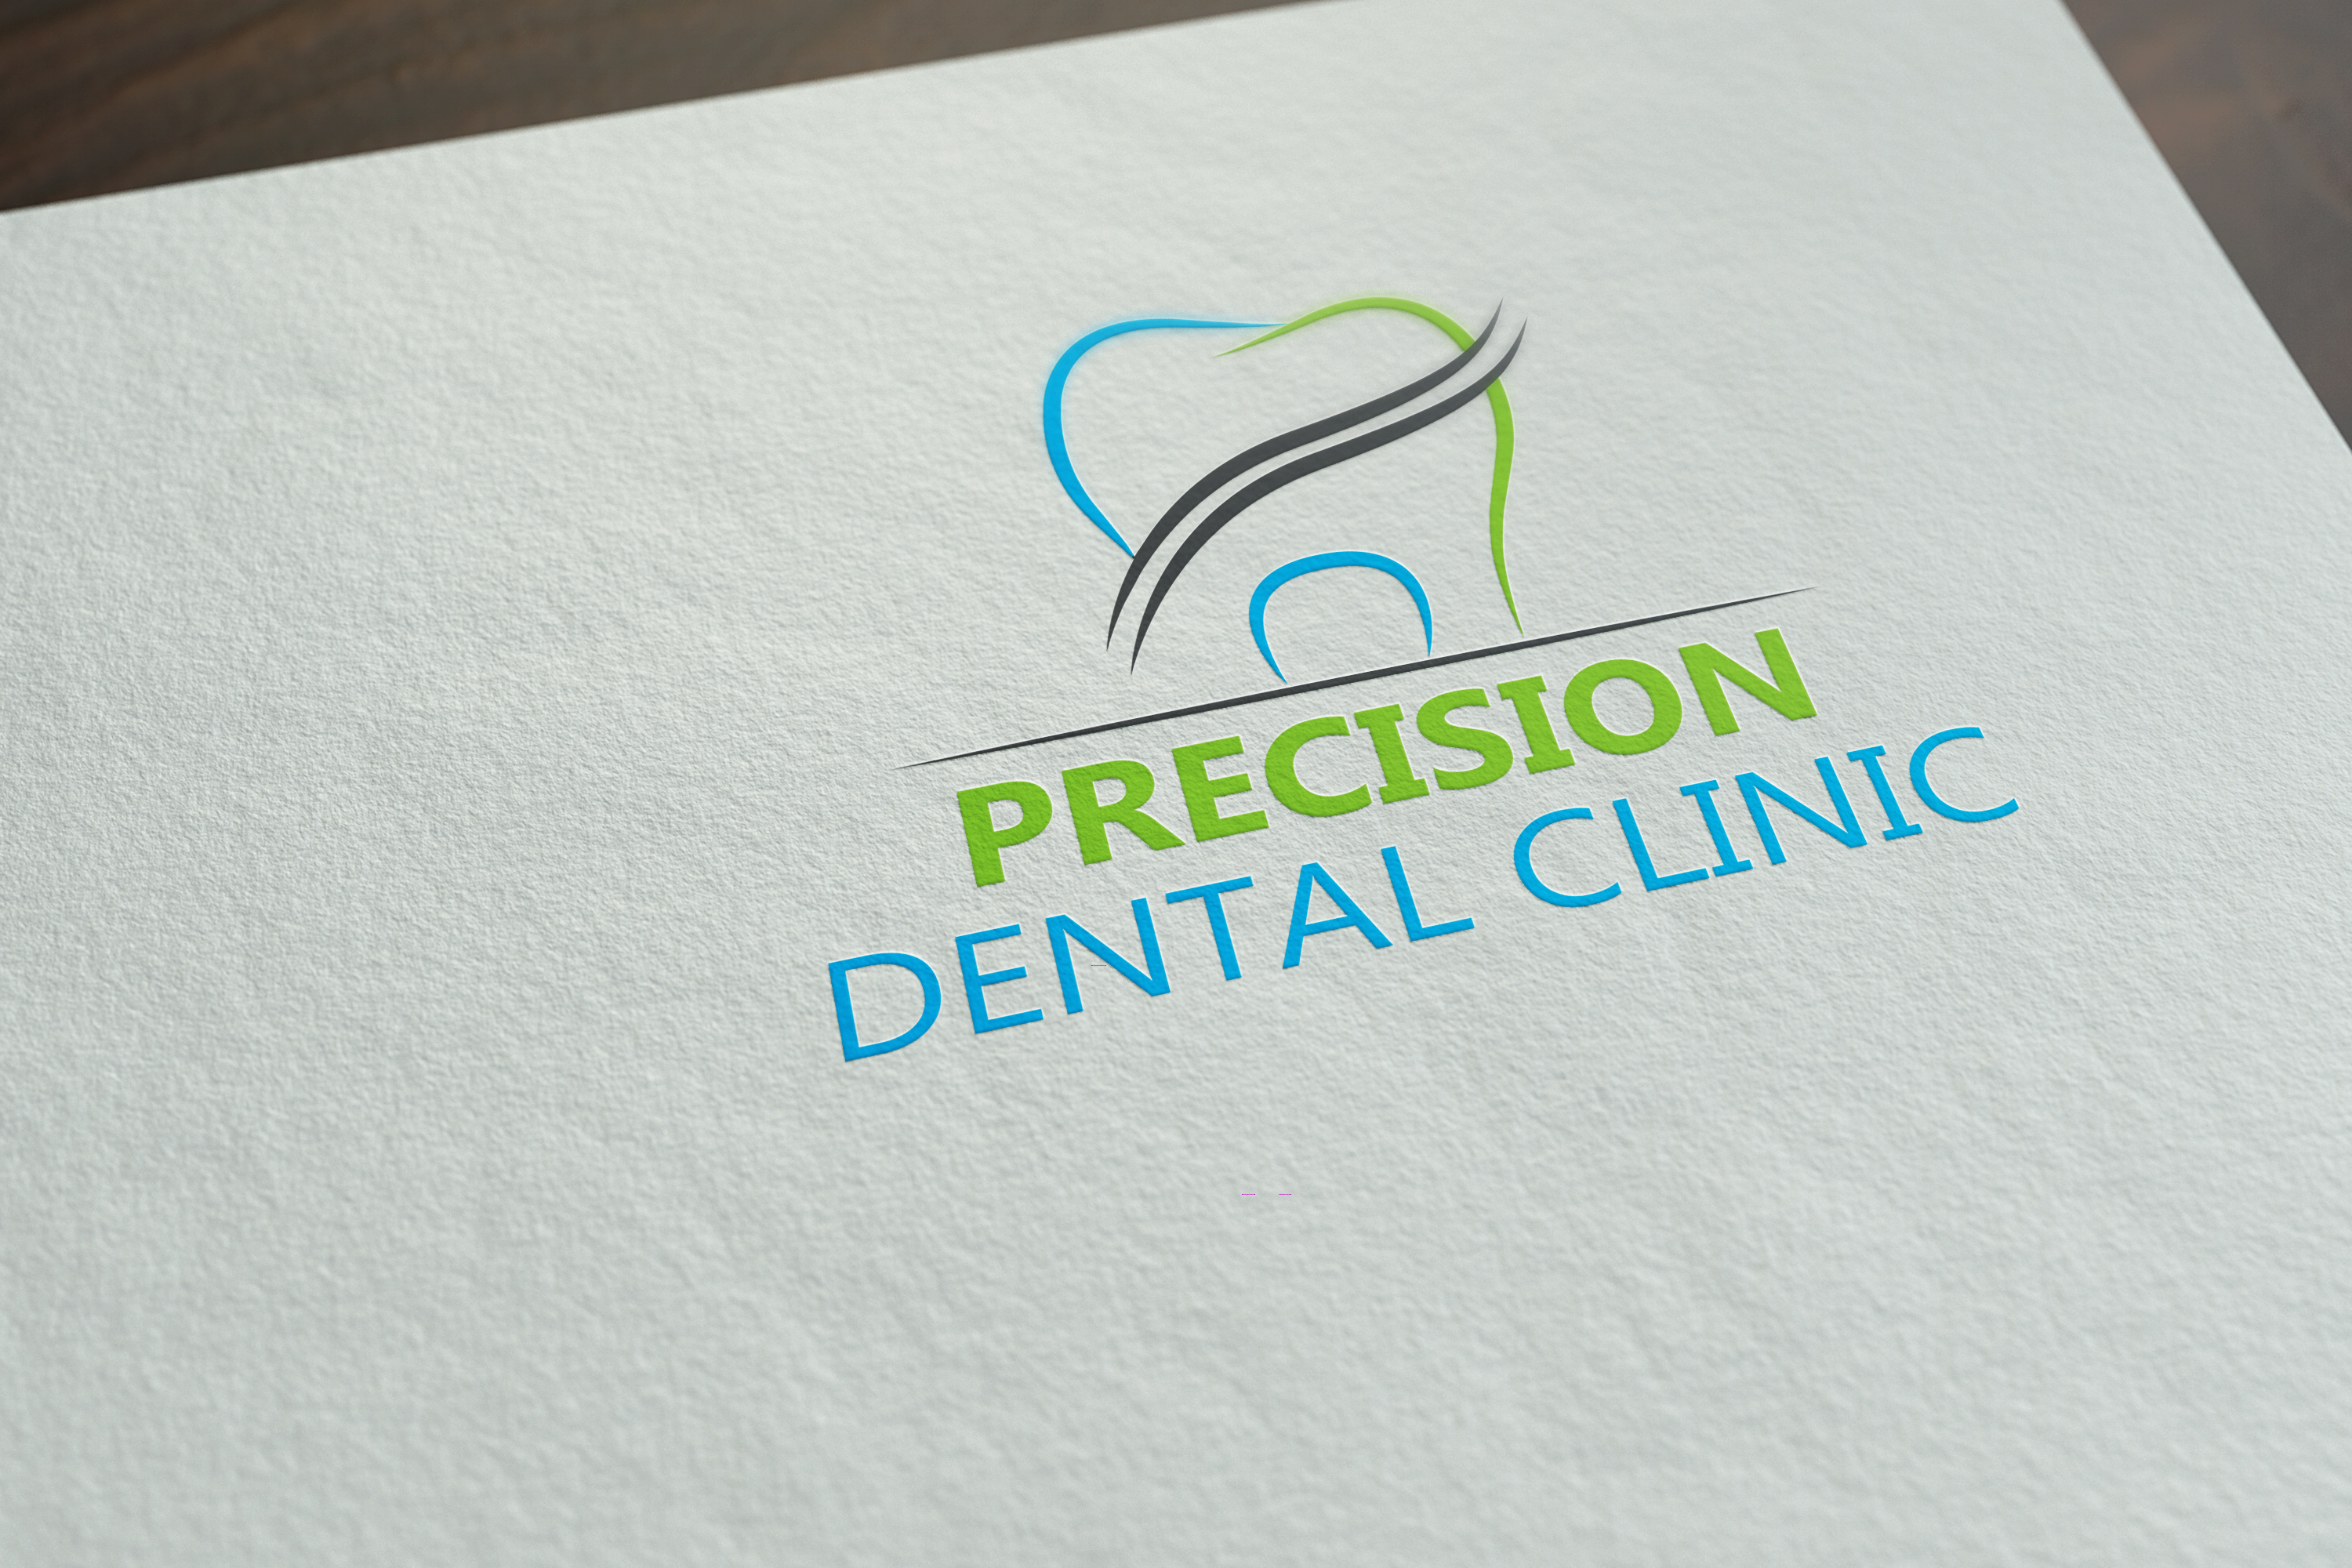 Logo Design by Arafat Hassan - Entry No. 155 in the Logo Design Contest Captivating Logo Design for Precision Dental Clinic.